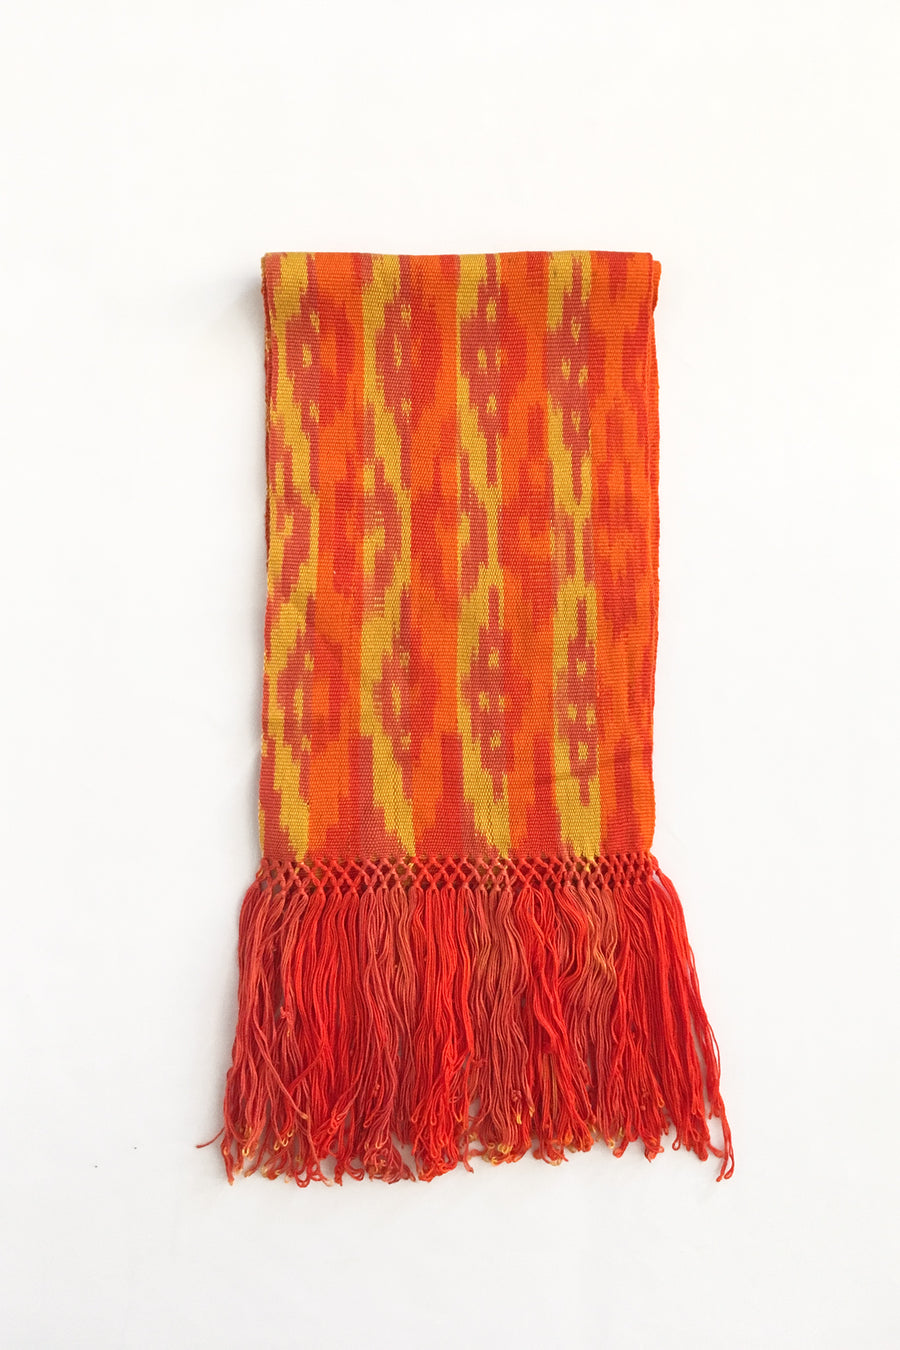 yellow-orange-scarf-ikat-macana-grape-apples-stripes-makikuna